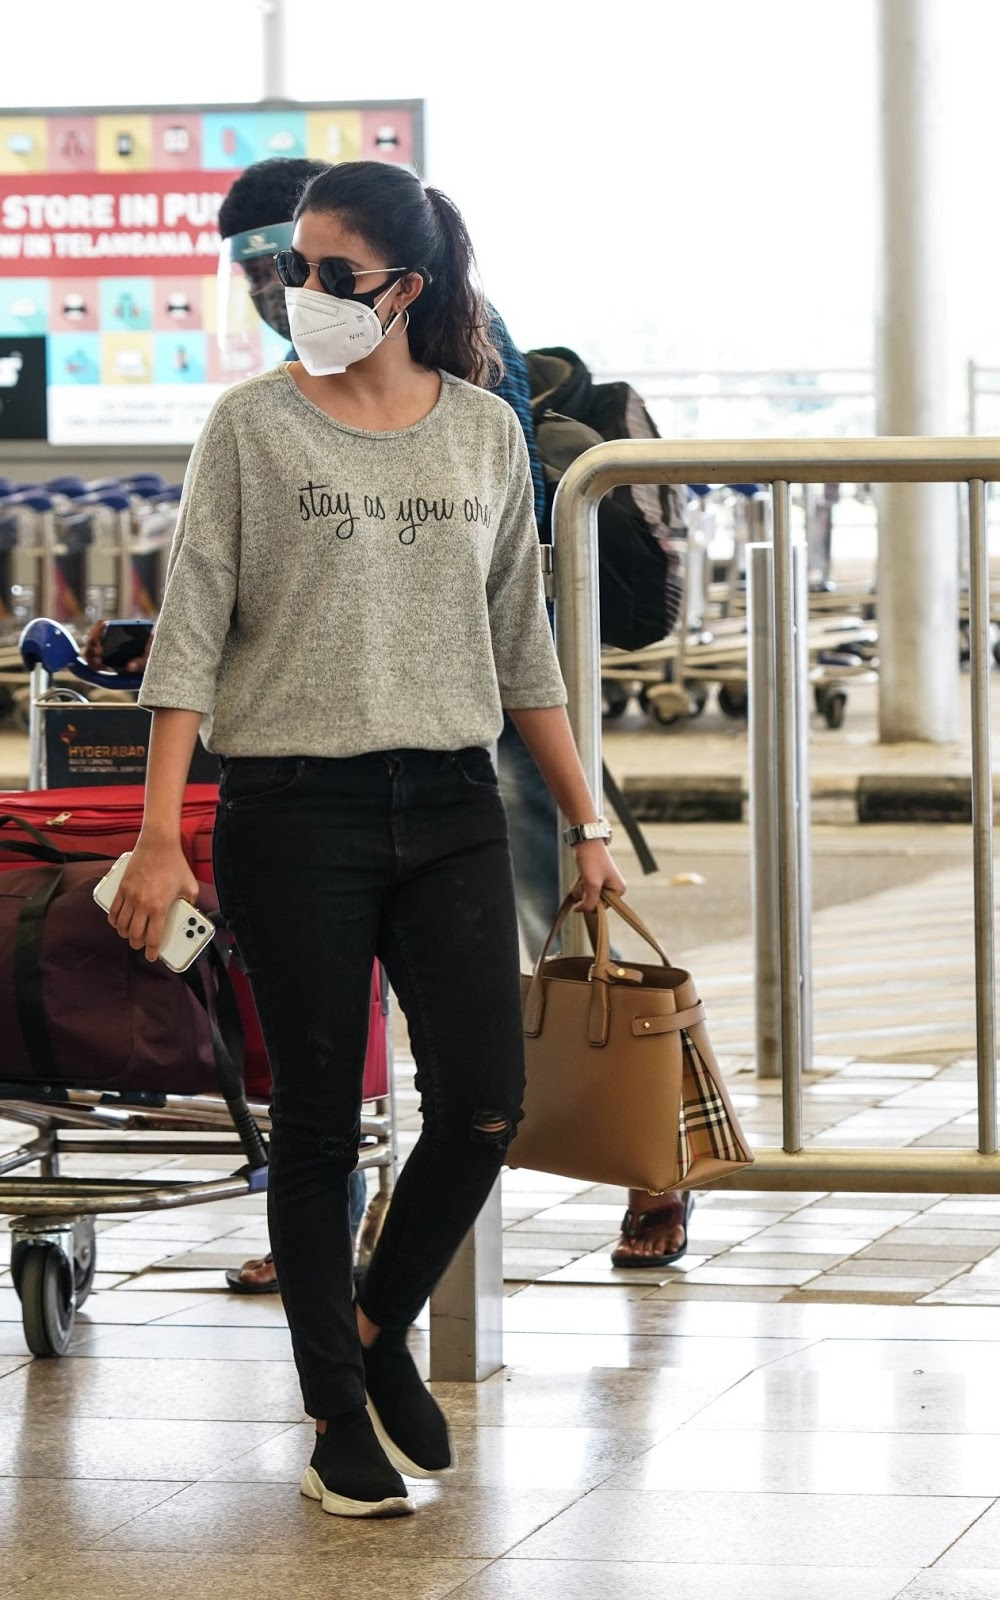 Keerthy Suresh in the Mask with Stunning Walk Style at Hyderabad Airport 1